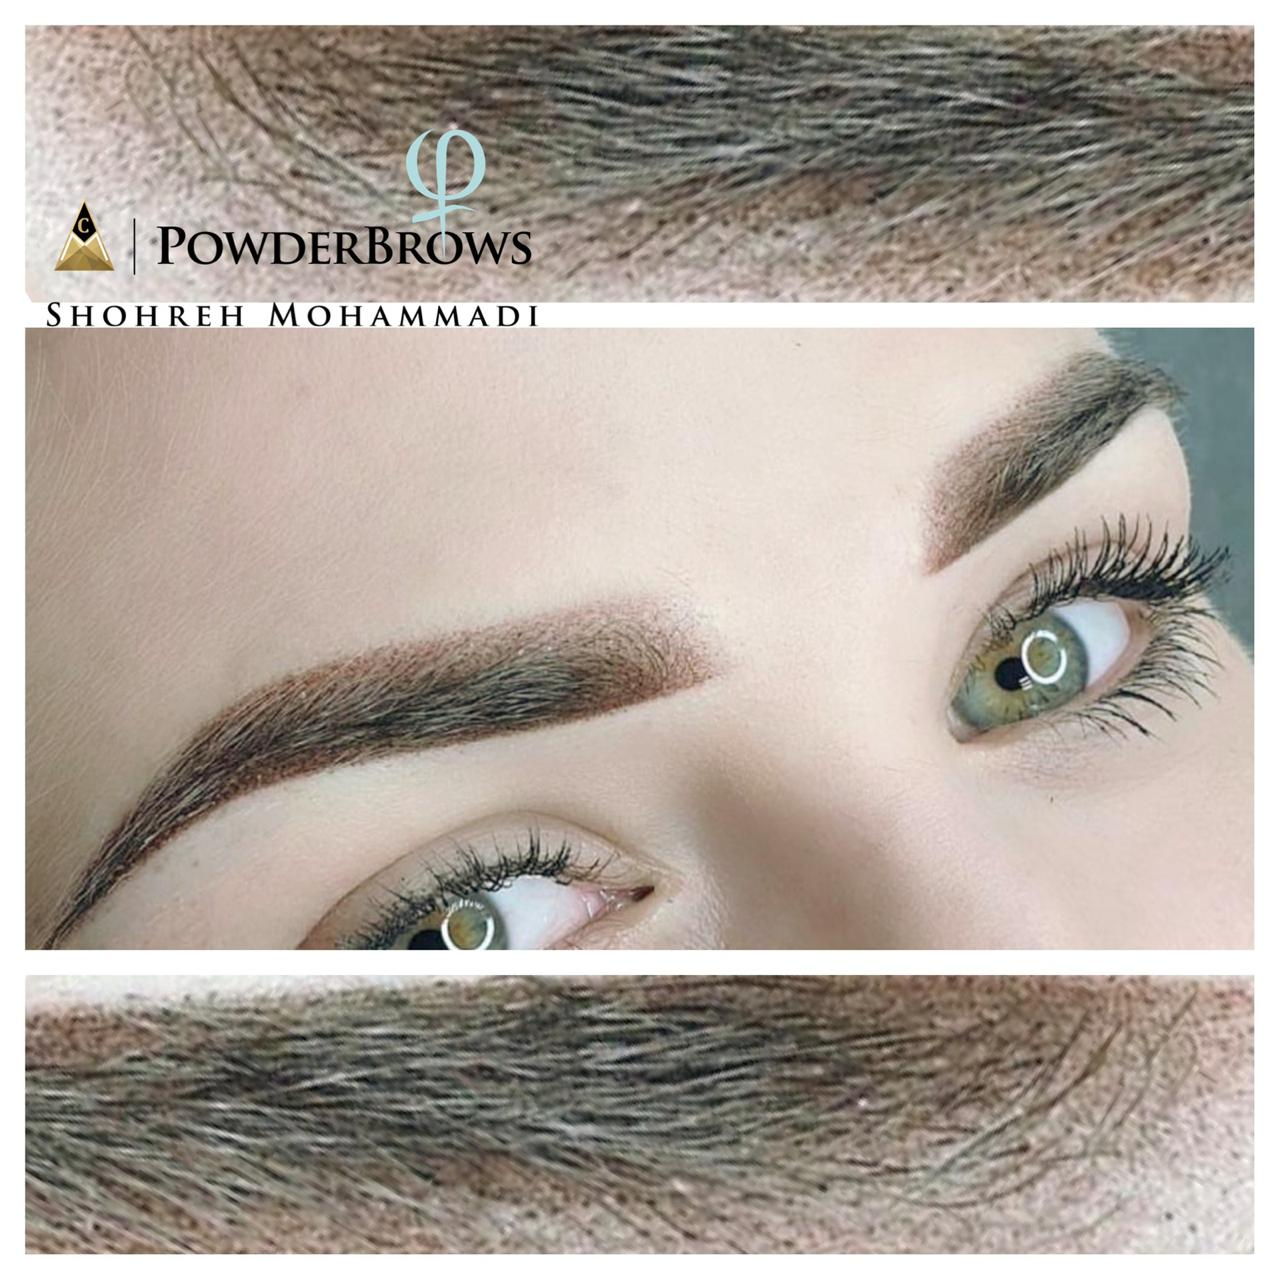 Powder Brows by Shohreh